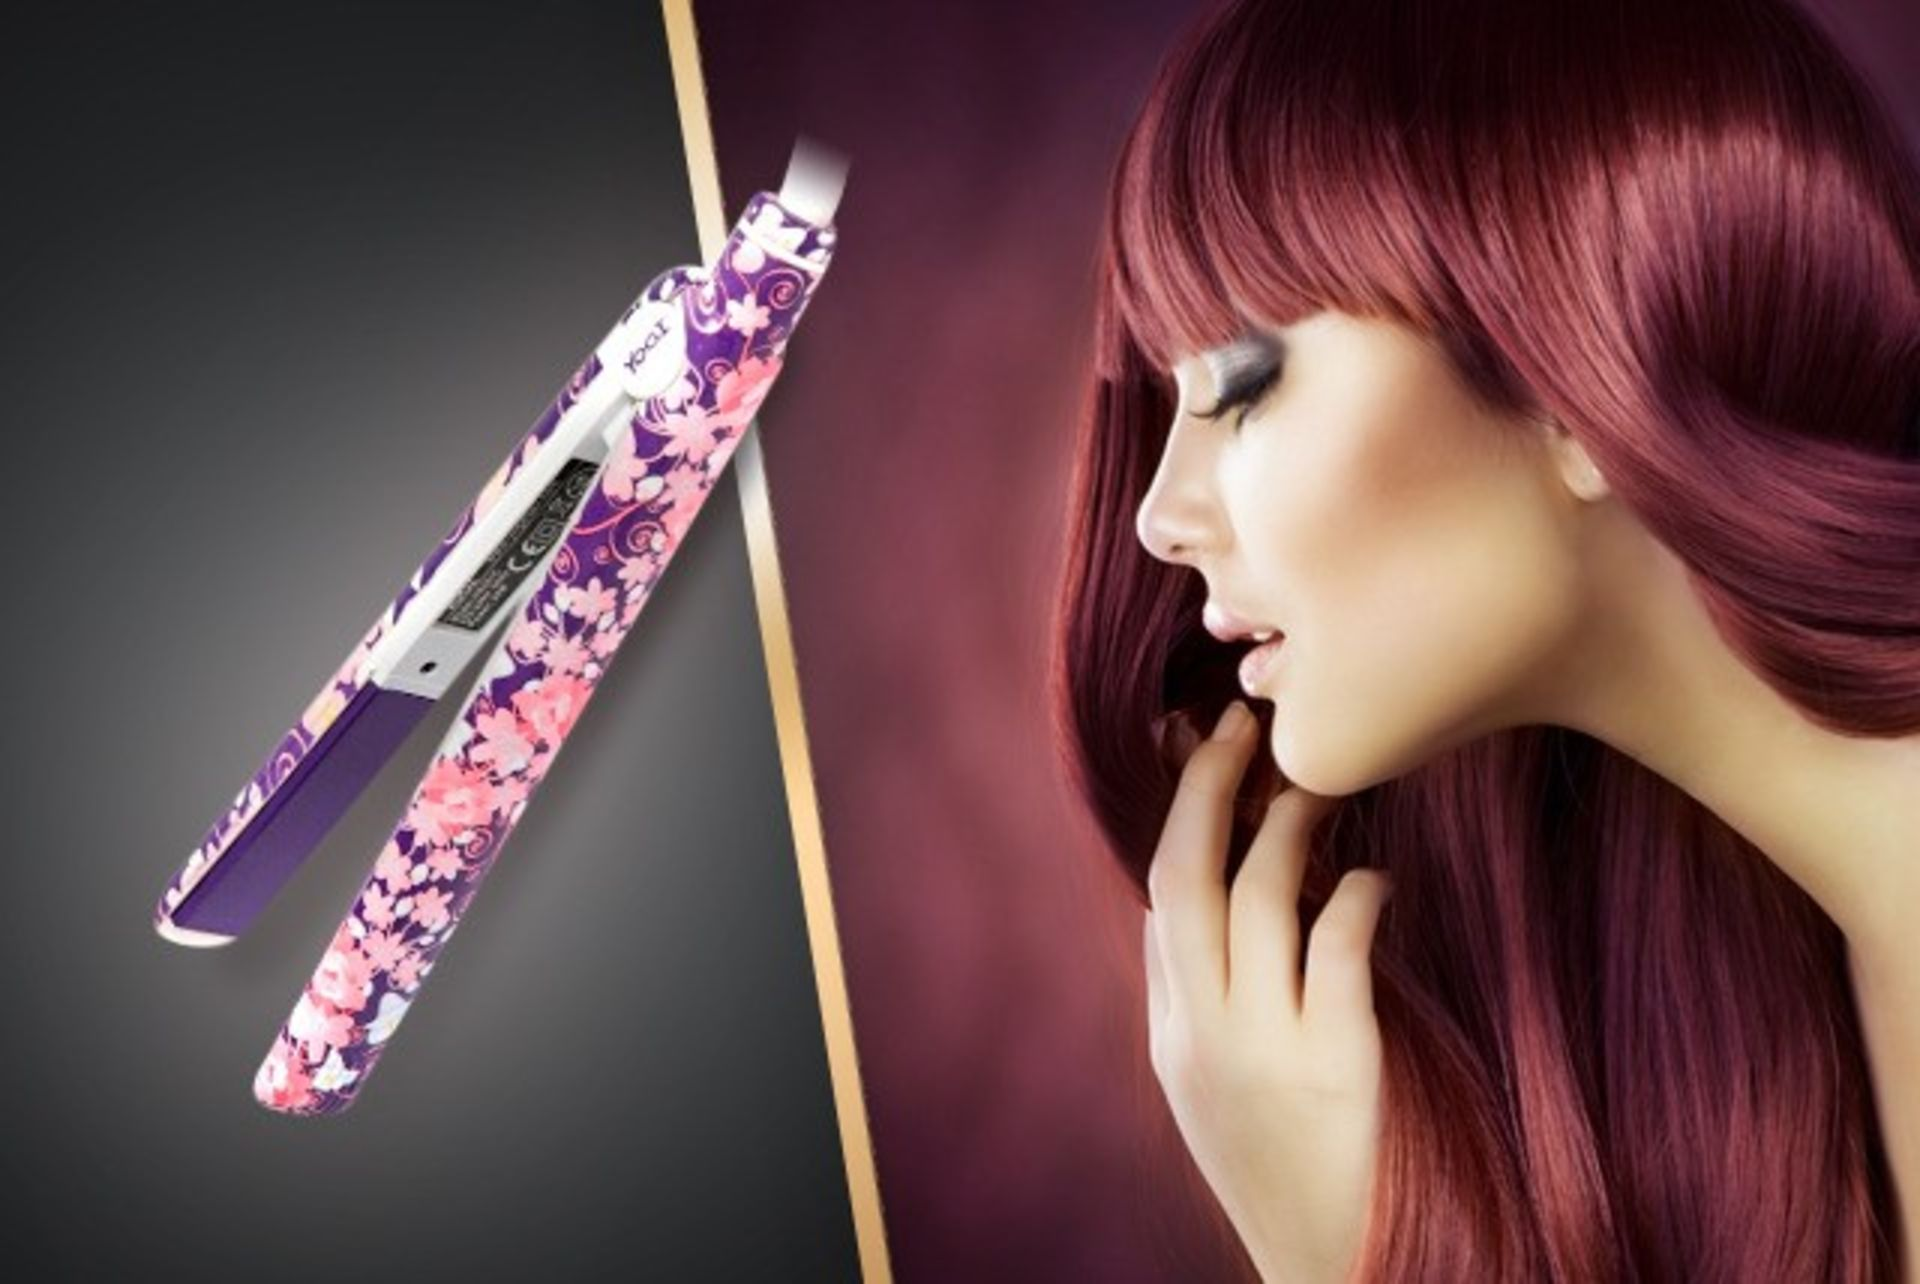 Lot 10771 - V Brand New Yogi Hair Straighteners With Ceramic & Tourmaline Infuded Floating Plates - Variable